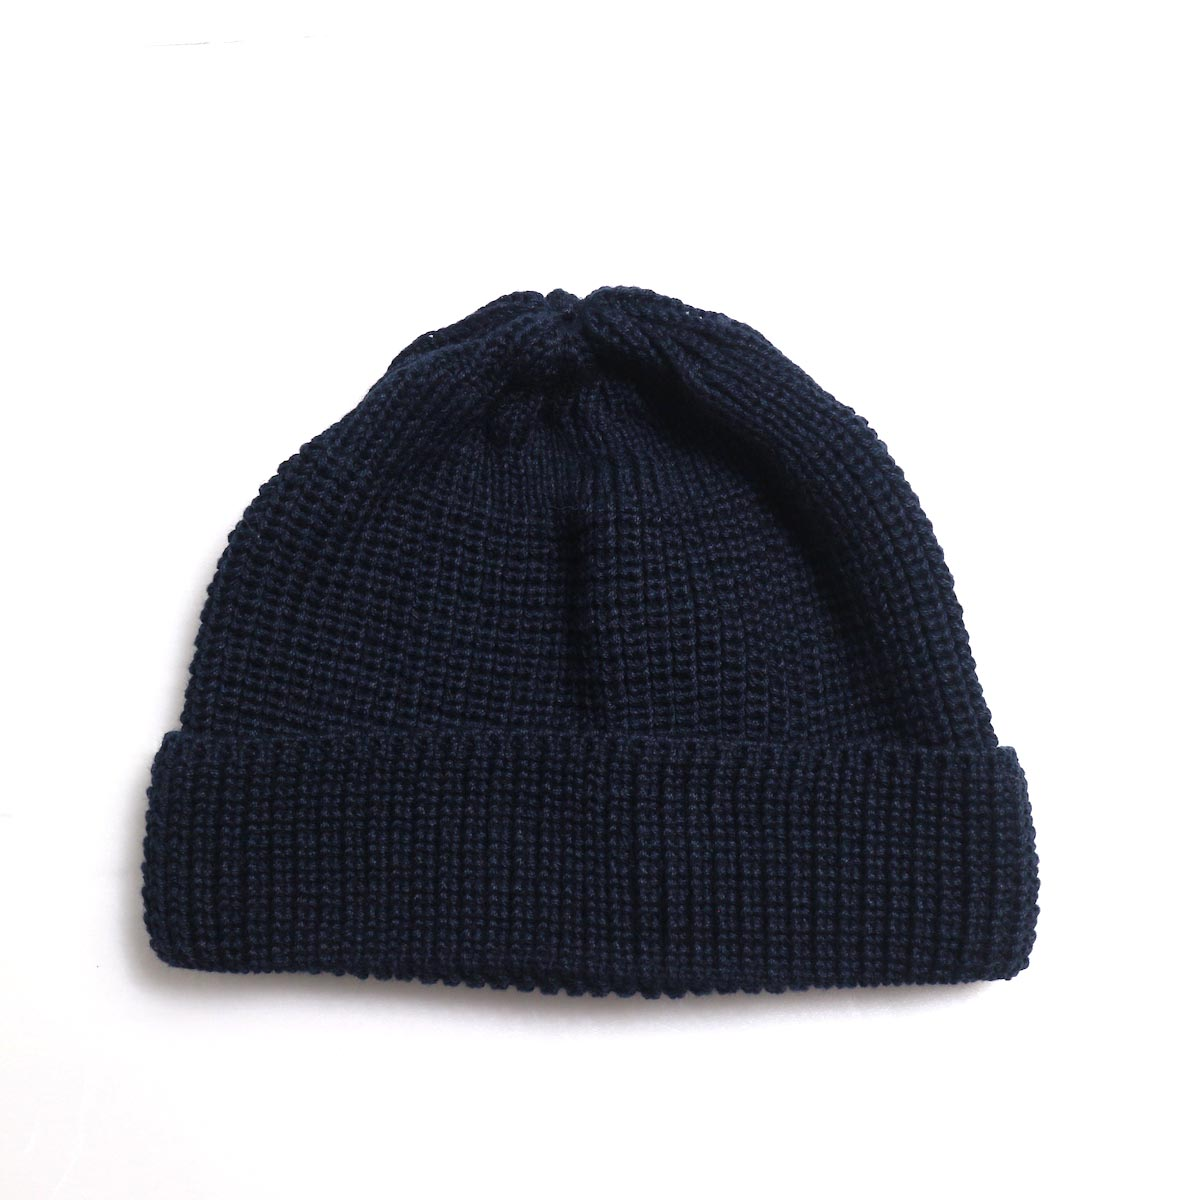 LEUCHTFEUER / WALFANGER -Cotton×Acrylic (Navy)